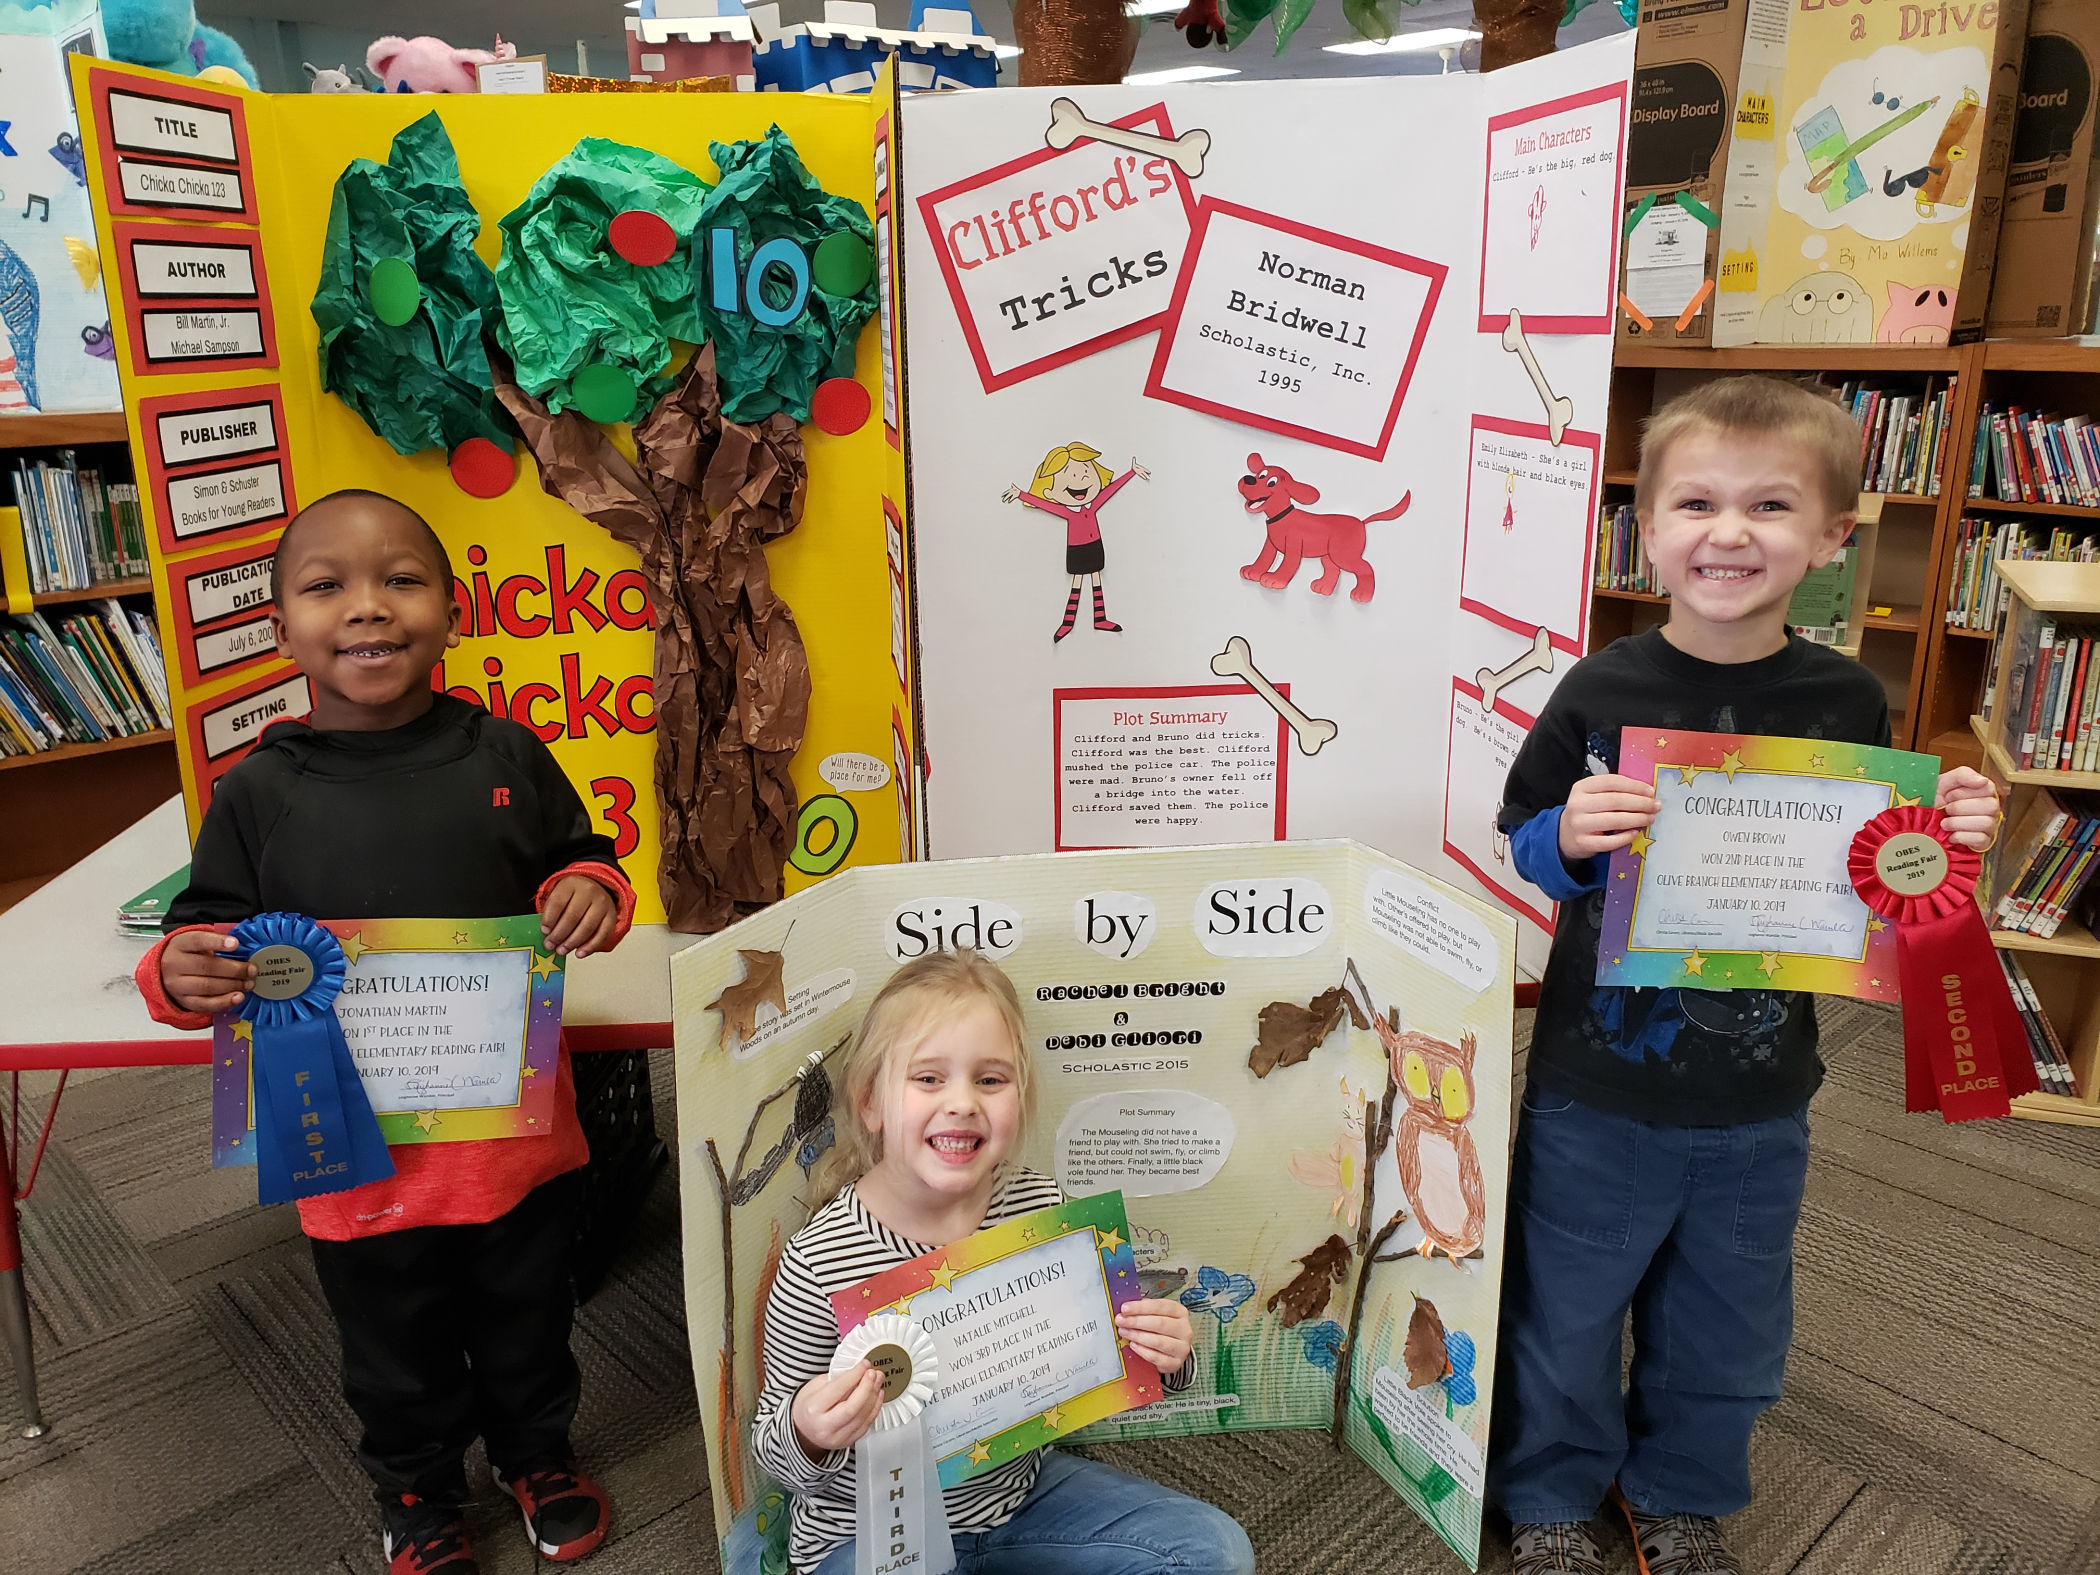 Pictures of students that won the reading fair